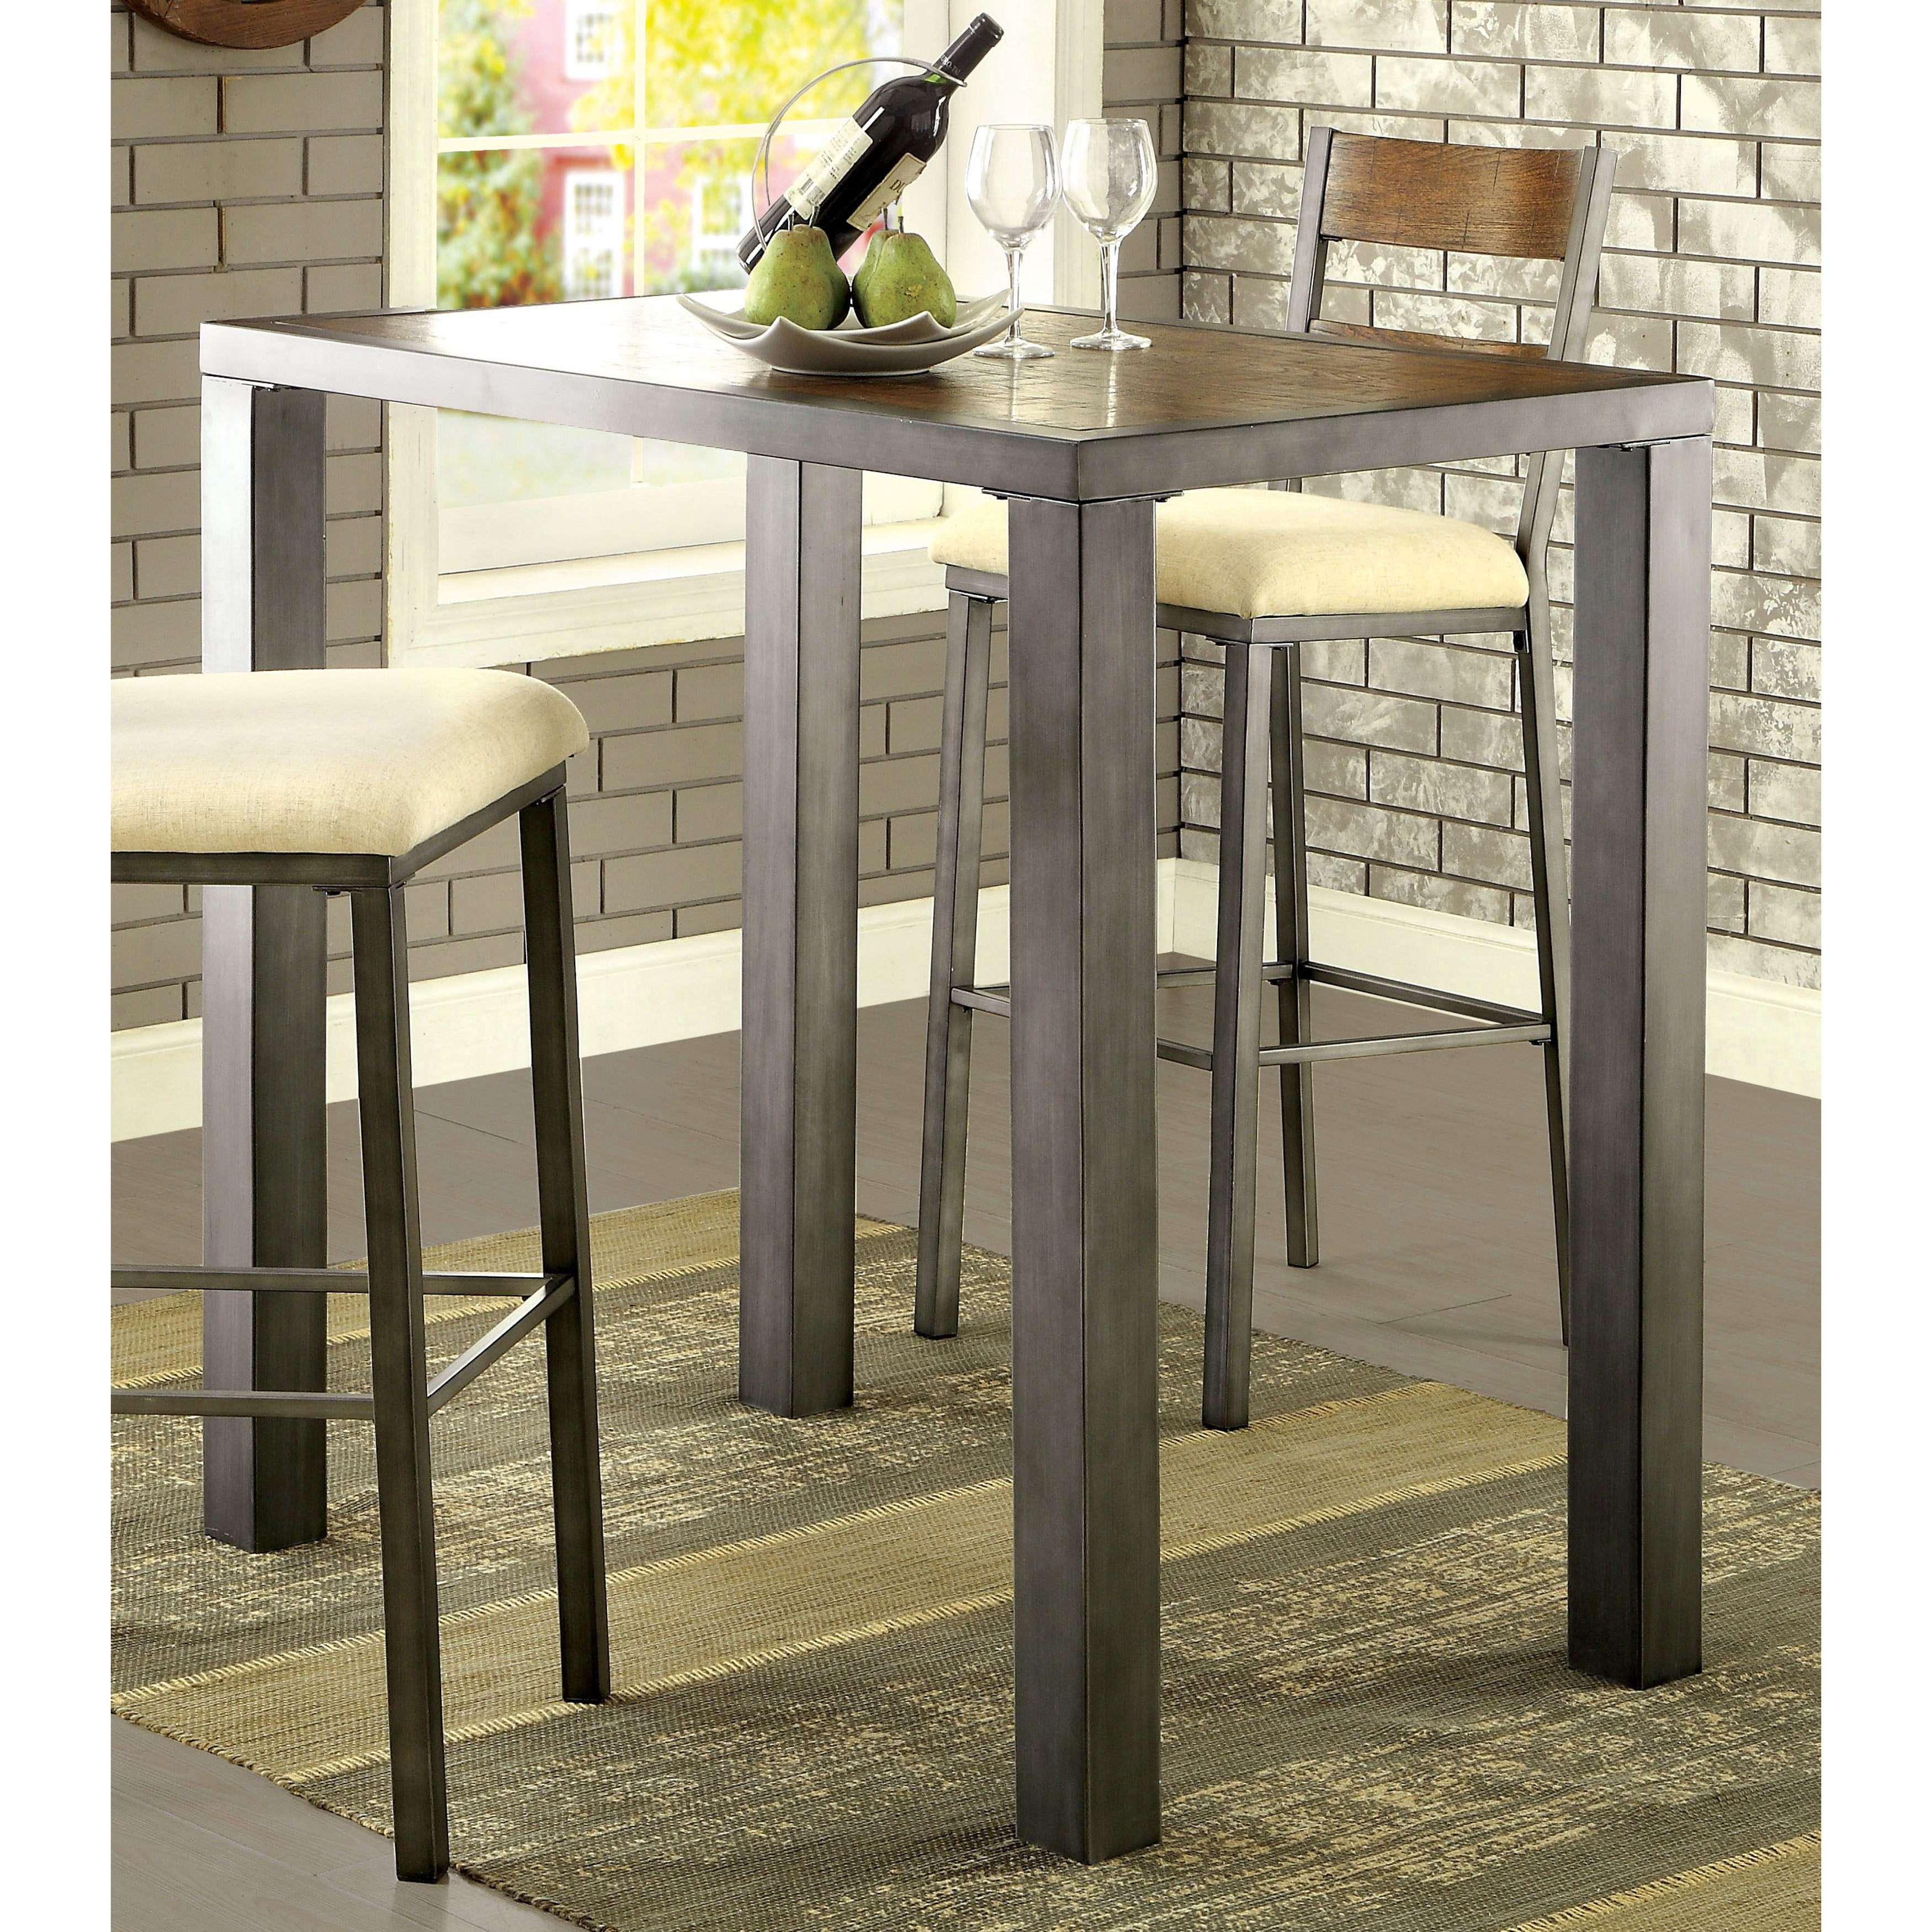 Shop Furniture Of America Kesso Industrial Plank Style Metal Bar Table   On  Sale   Free Shipping Today   Overstock.com   11630424